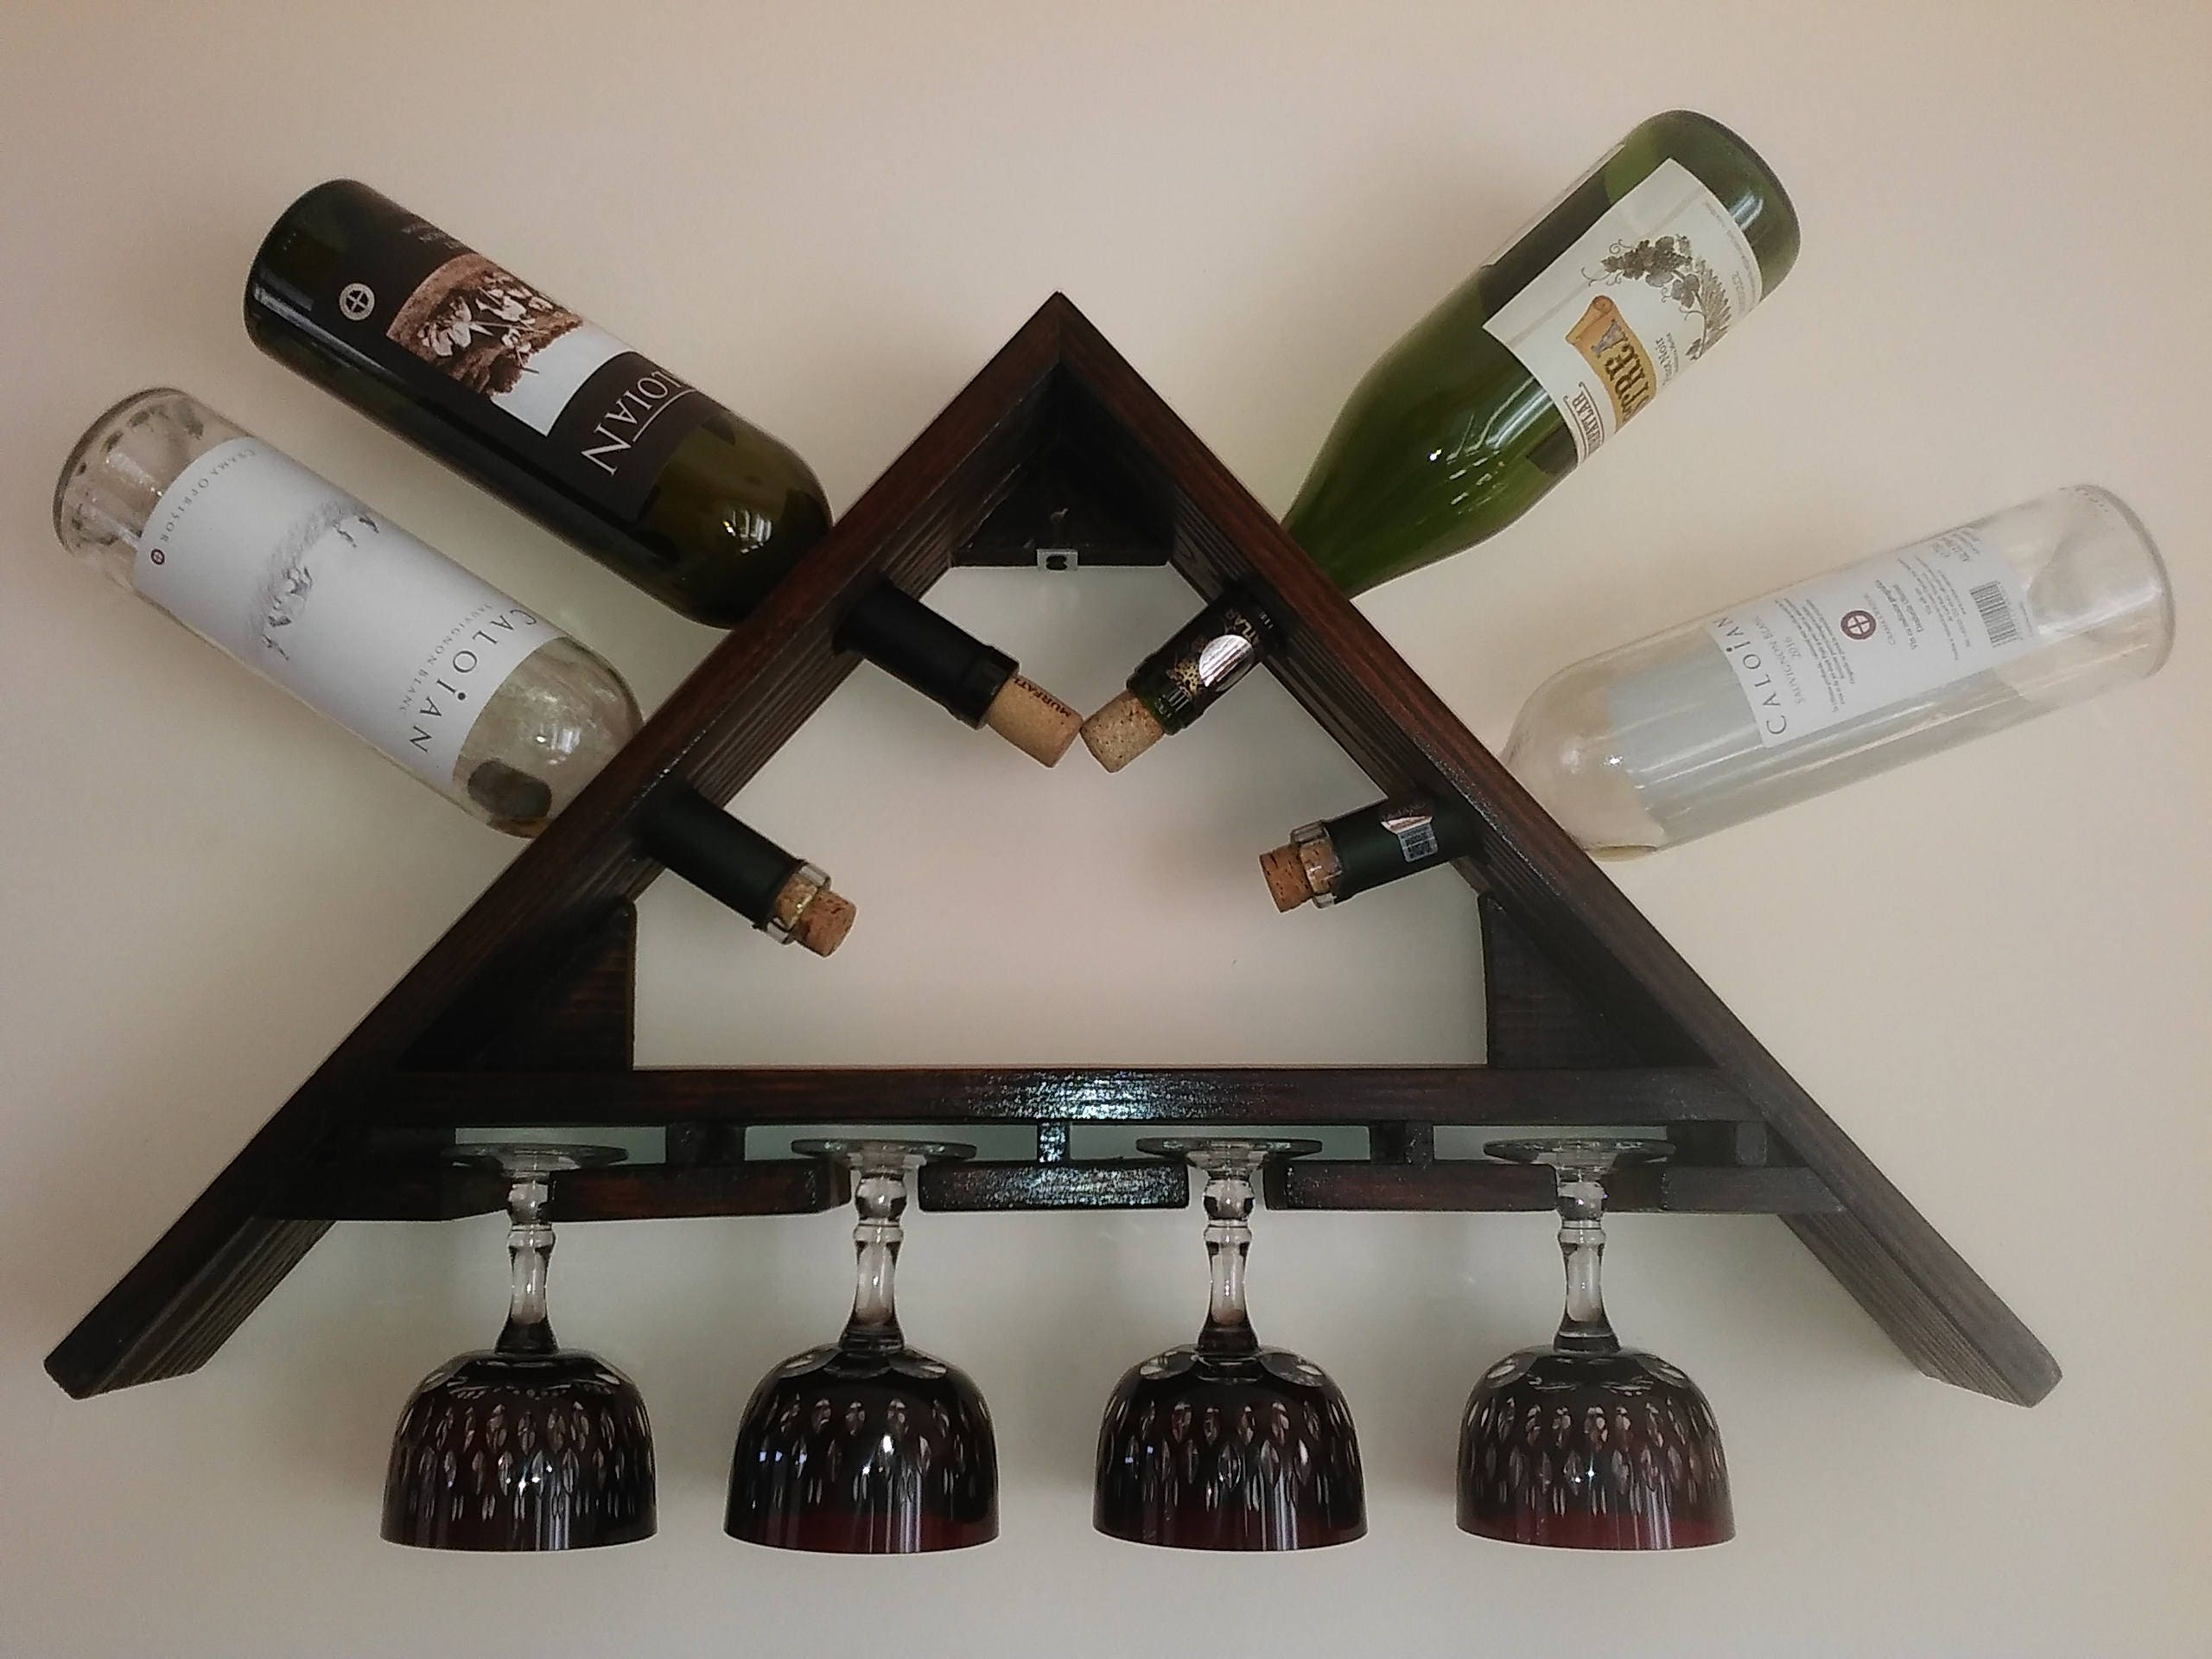 s id usd view rack umbra nickel catalog wine product iron pulse